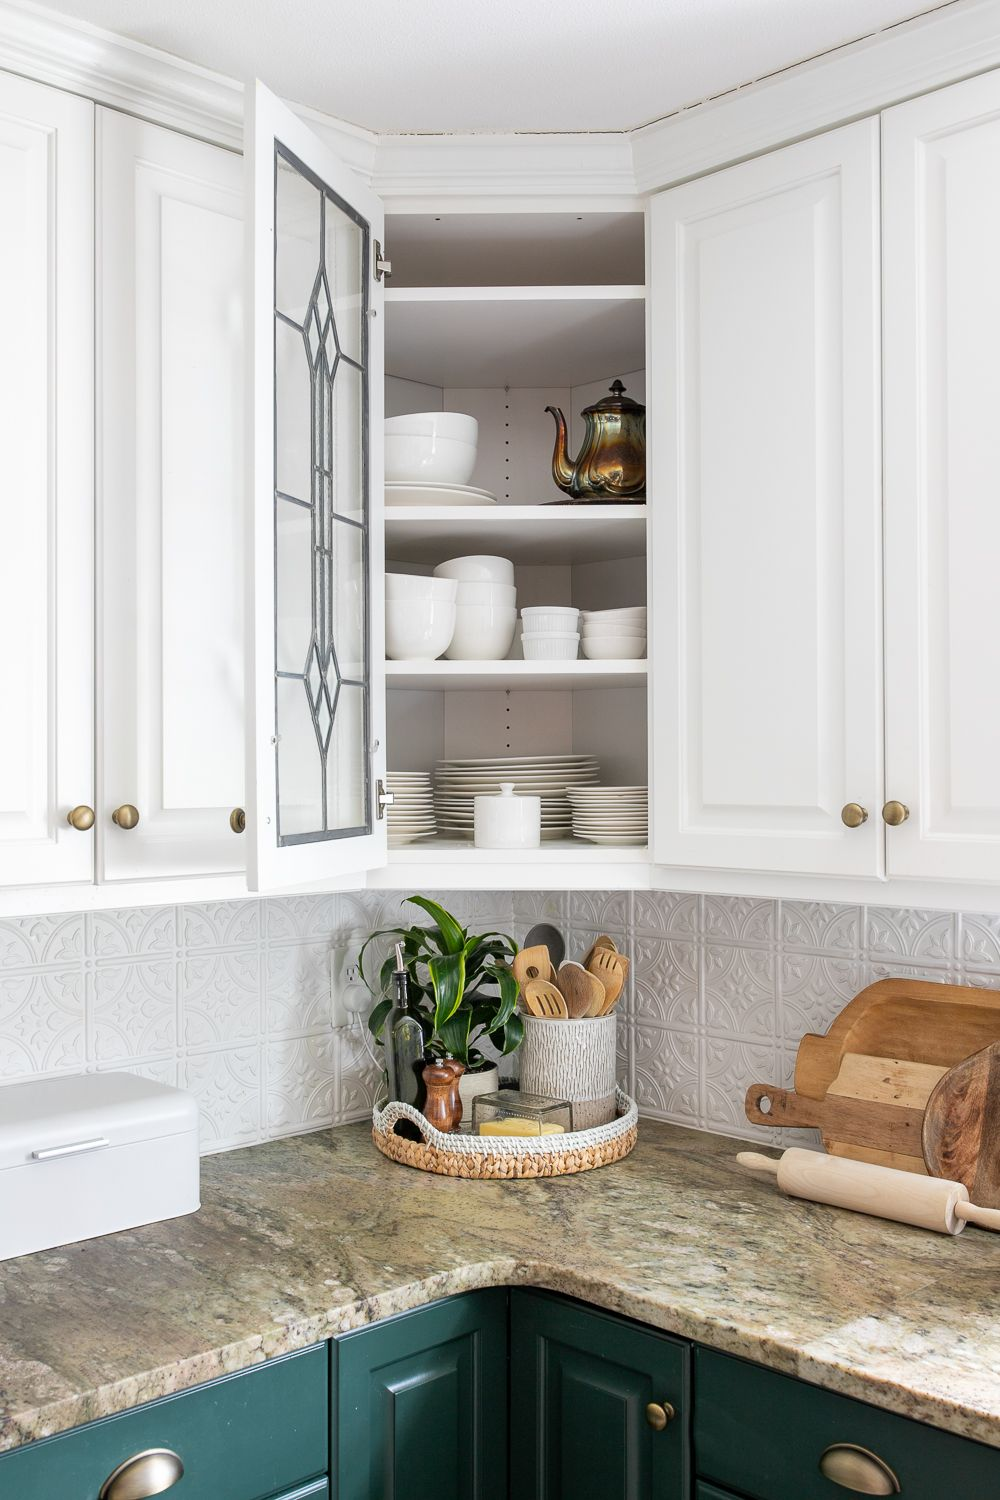 our full kitchen organization makeover in 2020 kitchen organization kitchen hacks on kitchen decor organization id=44981